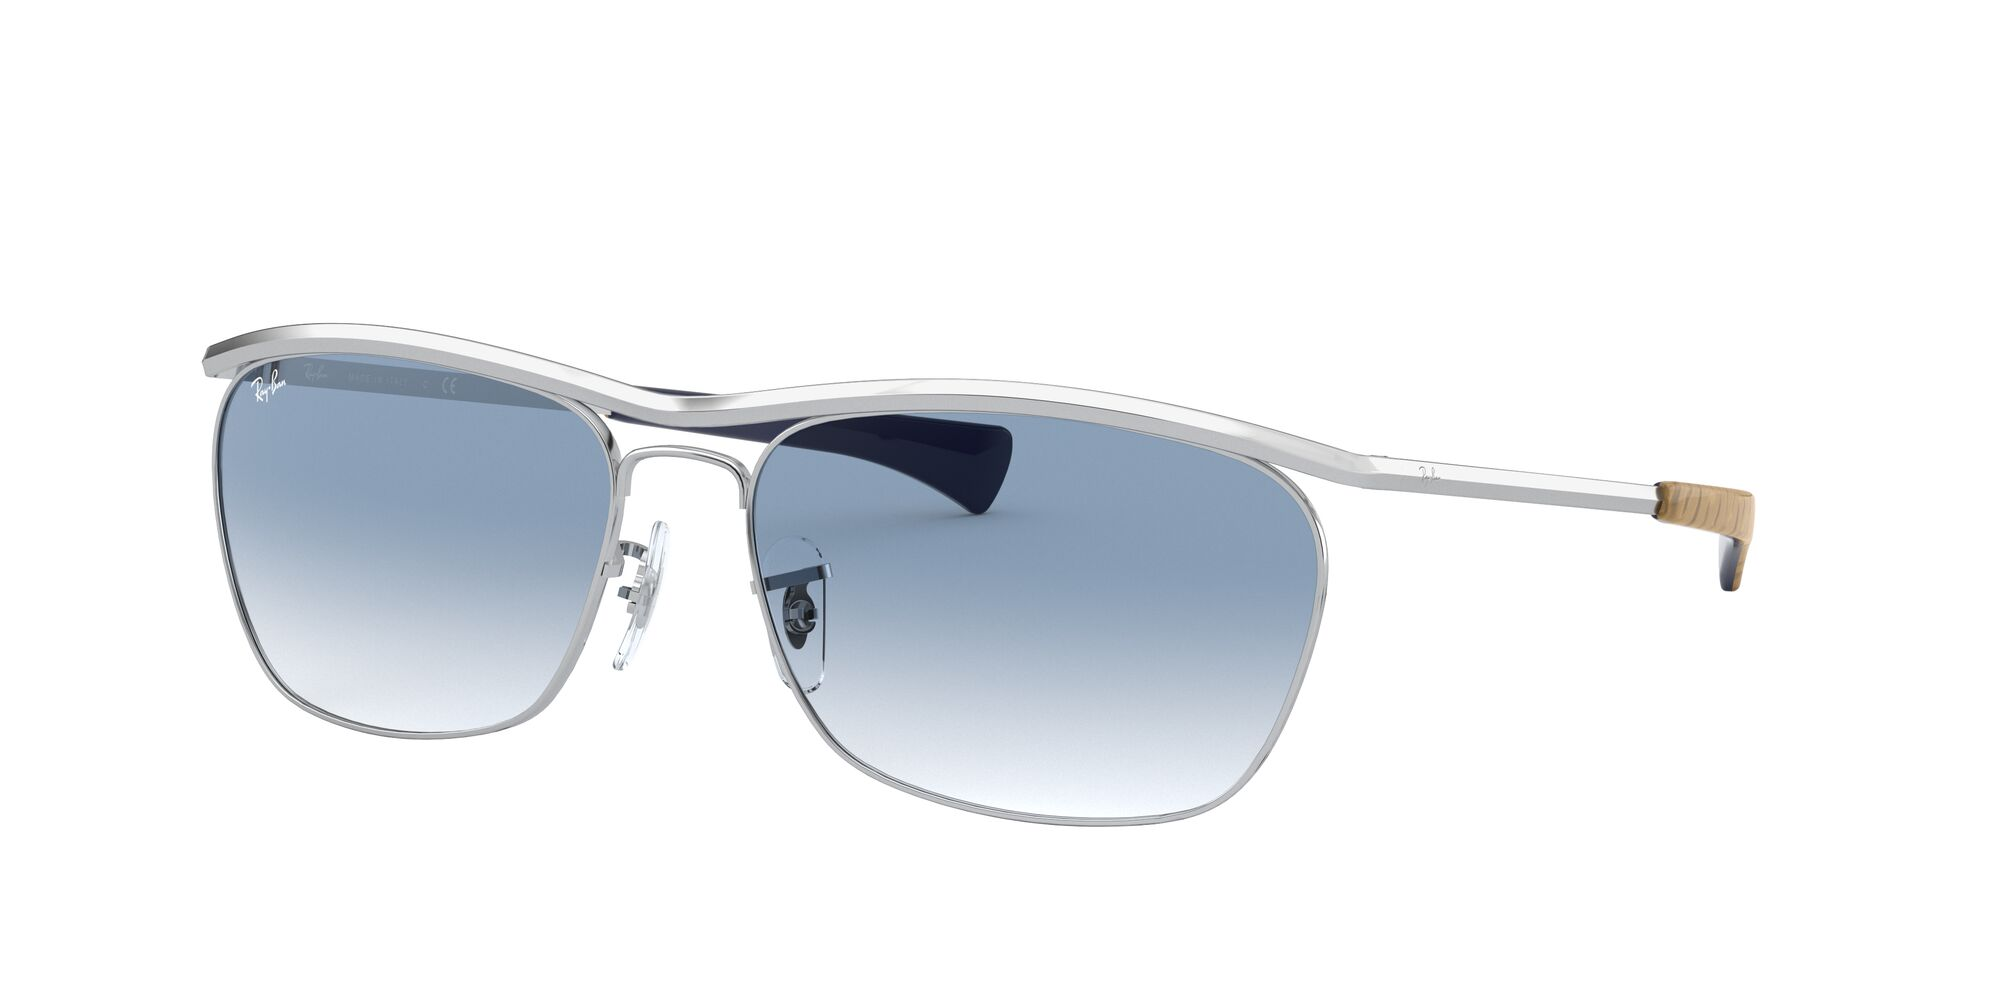 Angle_Left01 Ray-Ban Ray-Ban 0RB3619 003/3F 60/16 Zilver/Blauw